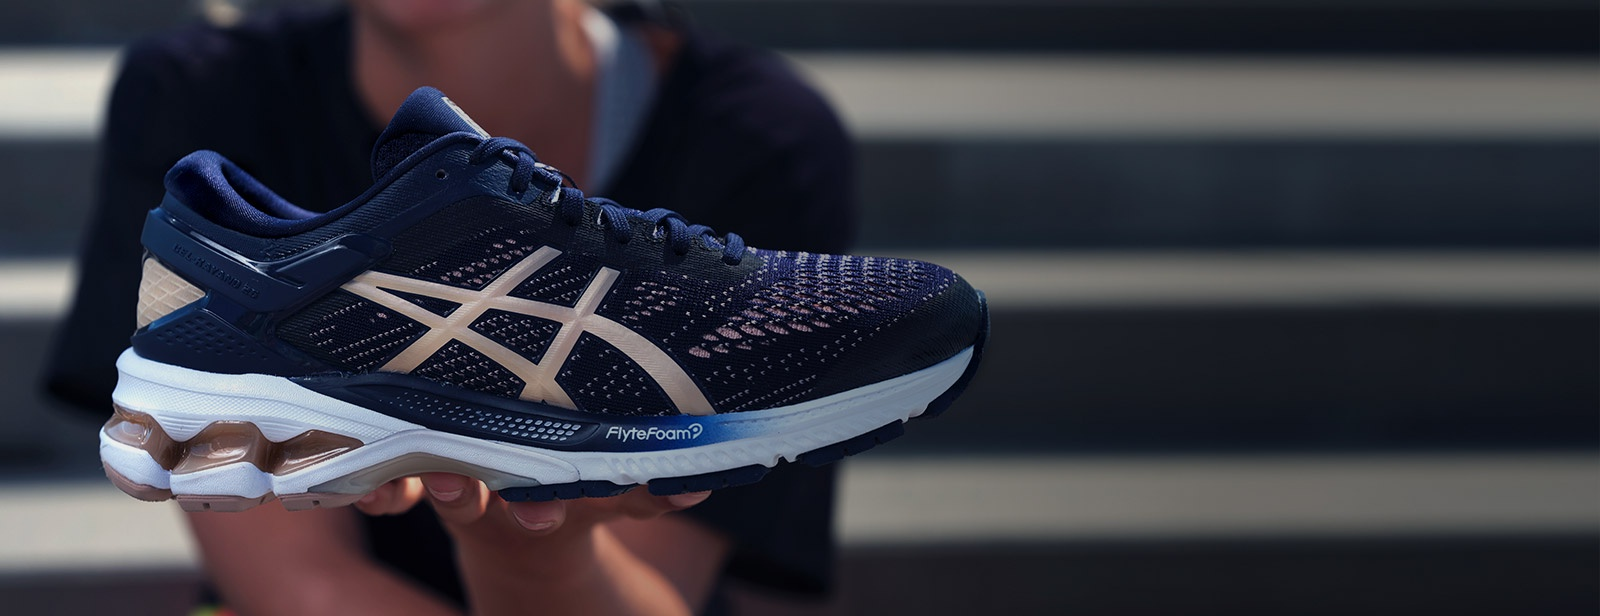 expedición techo Credo  GEL-KAYANO® 26 | PROTECT YOUR EVERY STEP